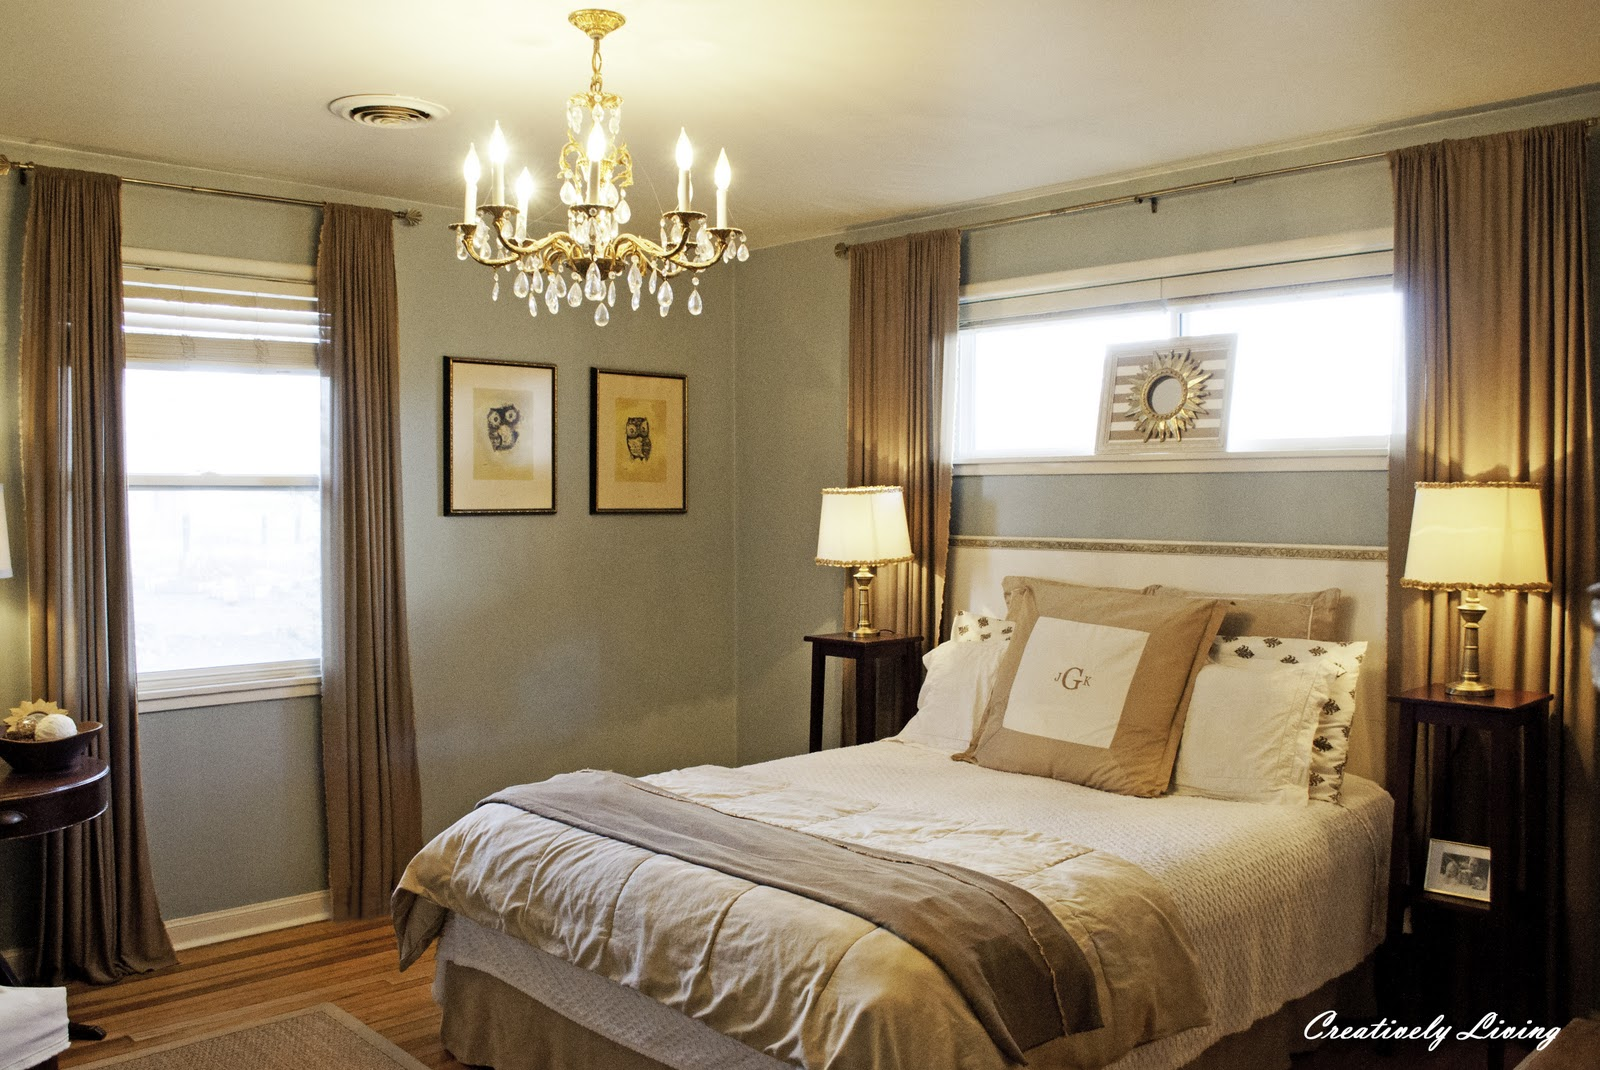 From Gardners 2 Bergers Reader Feater Romantic Bedroom Reveal